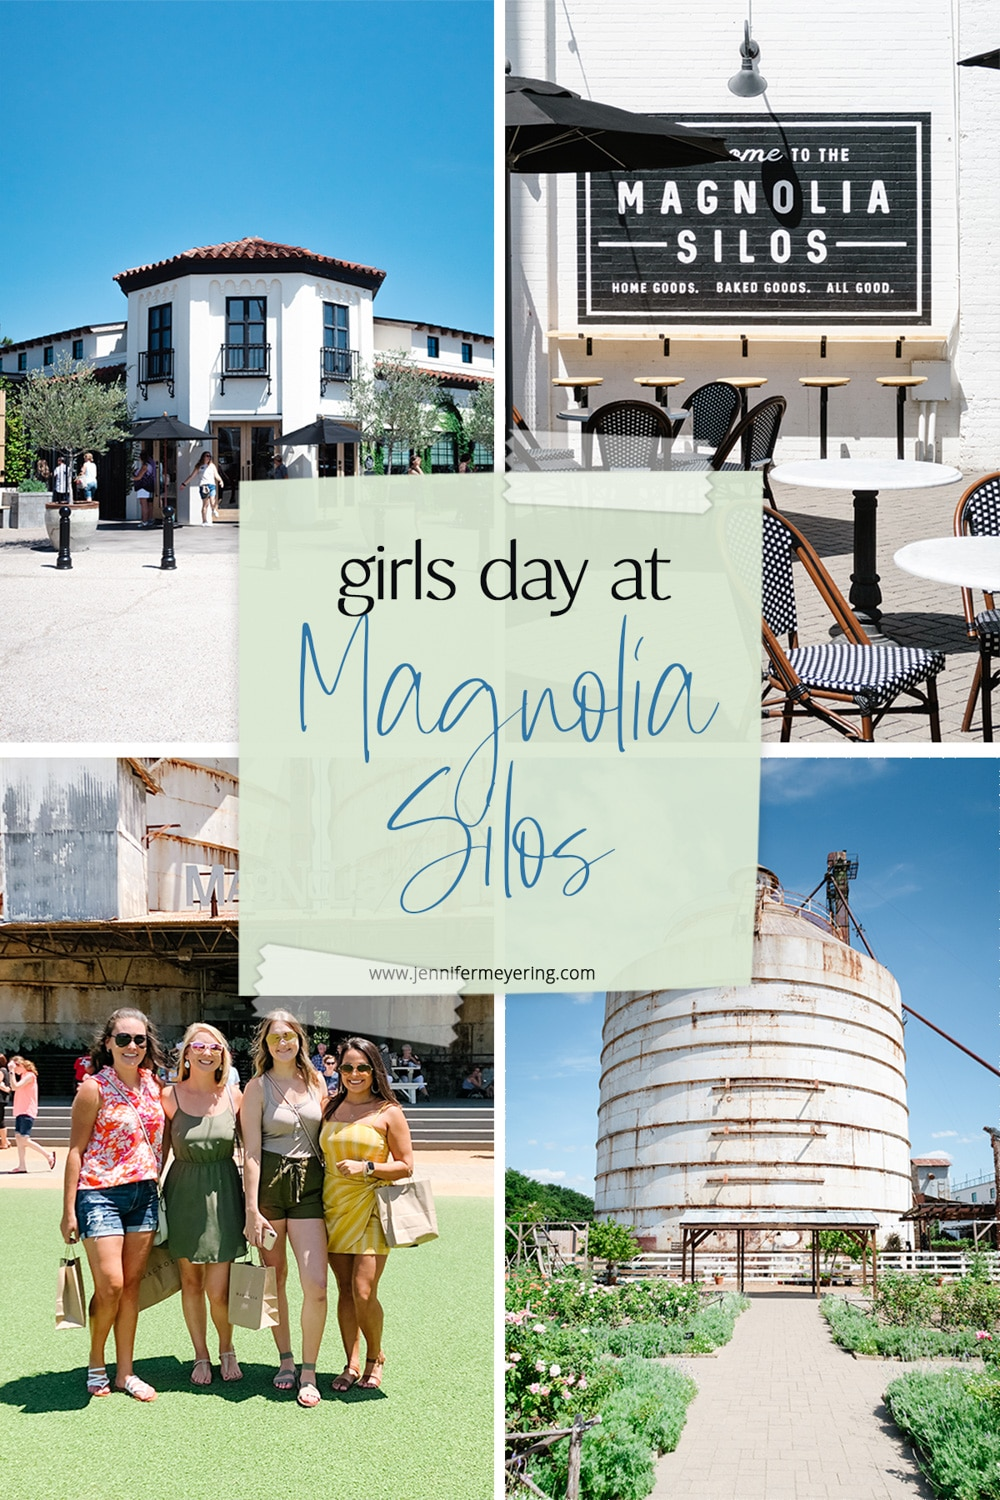 A Day at Magnolia Silos